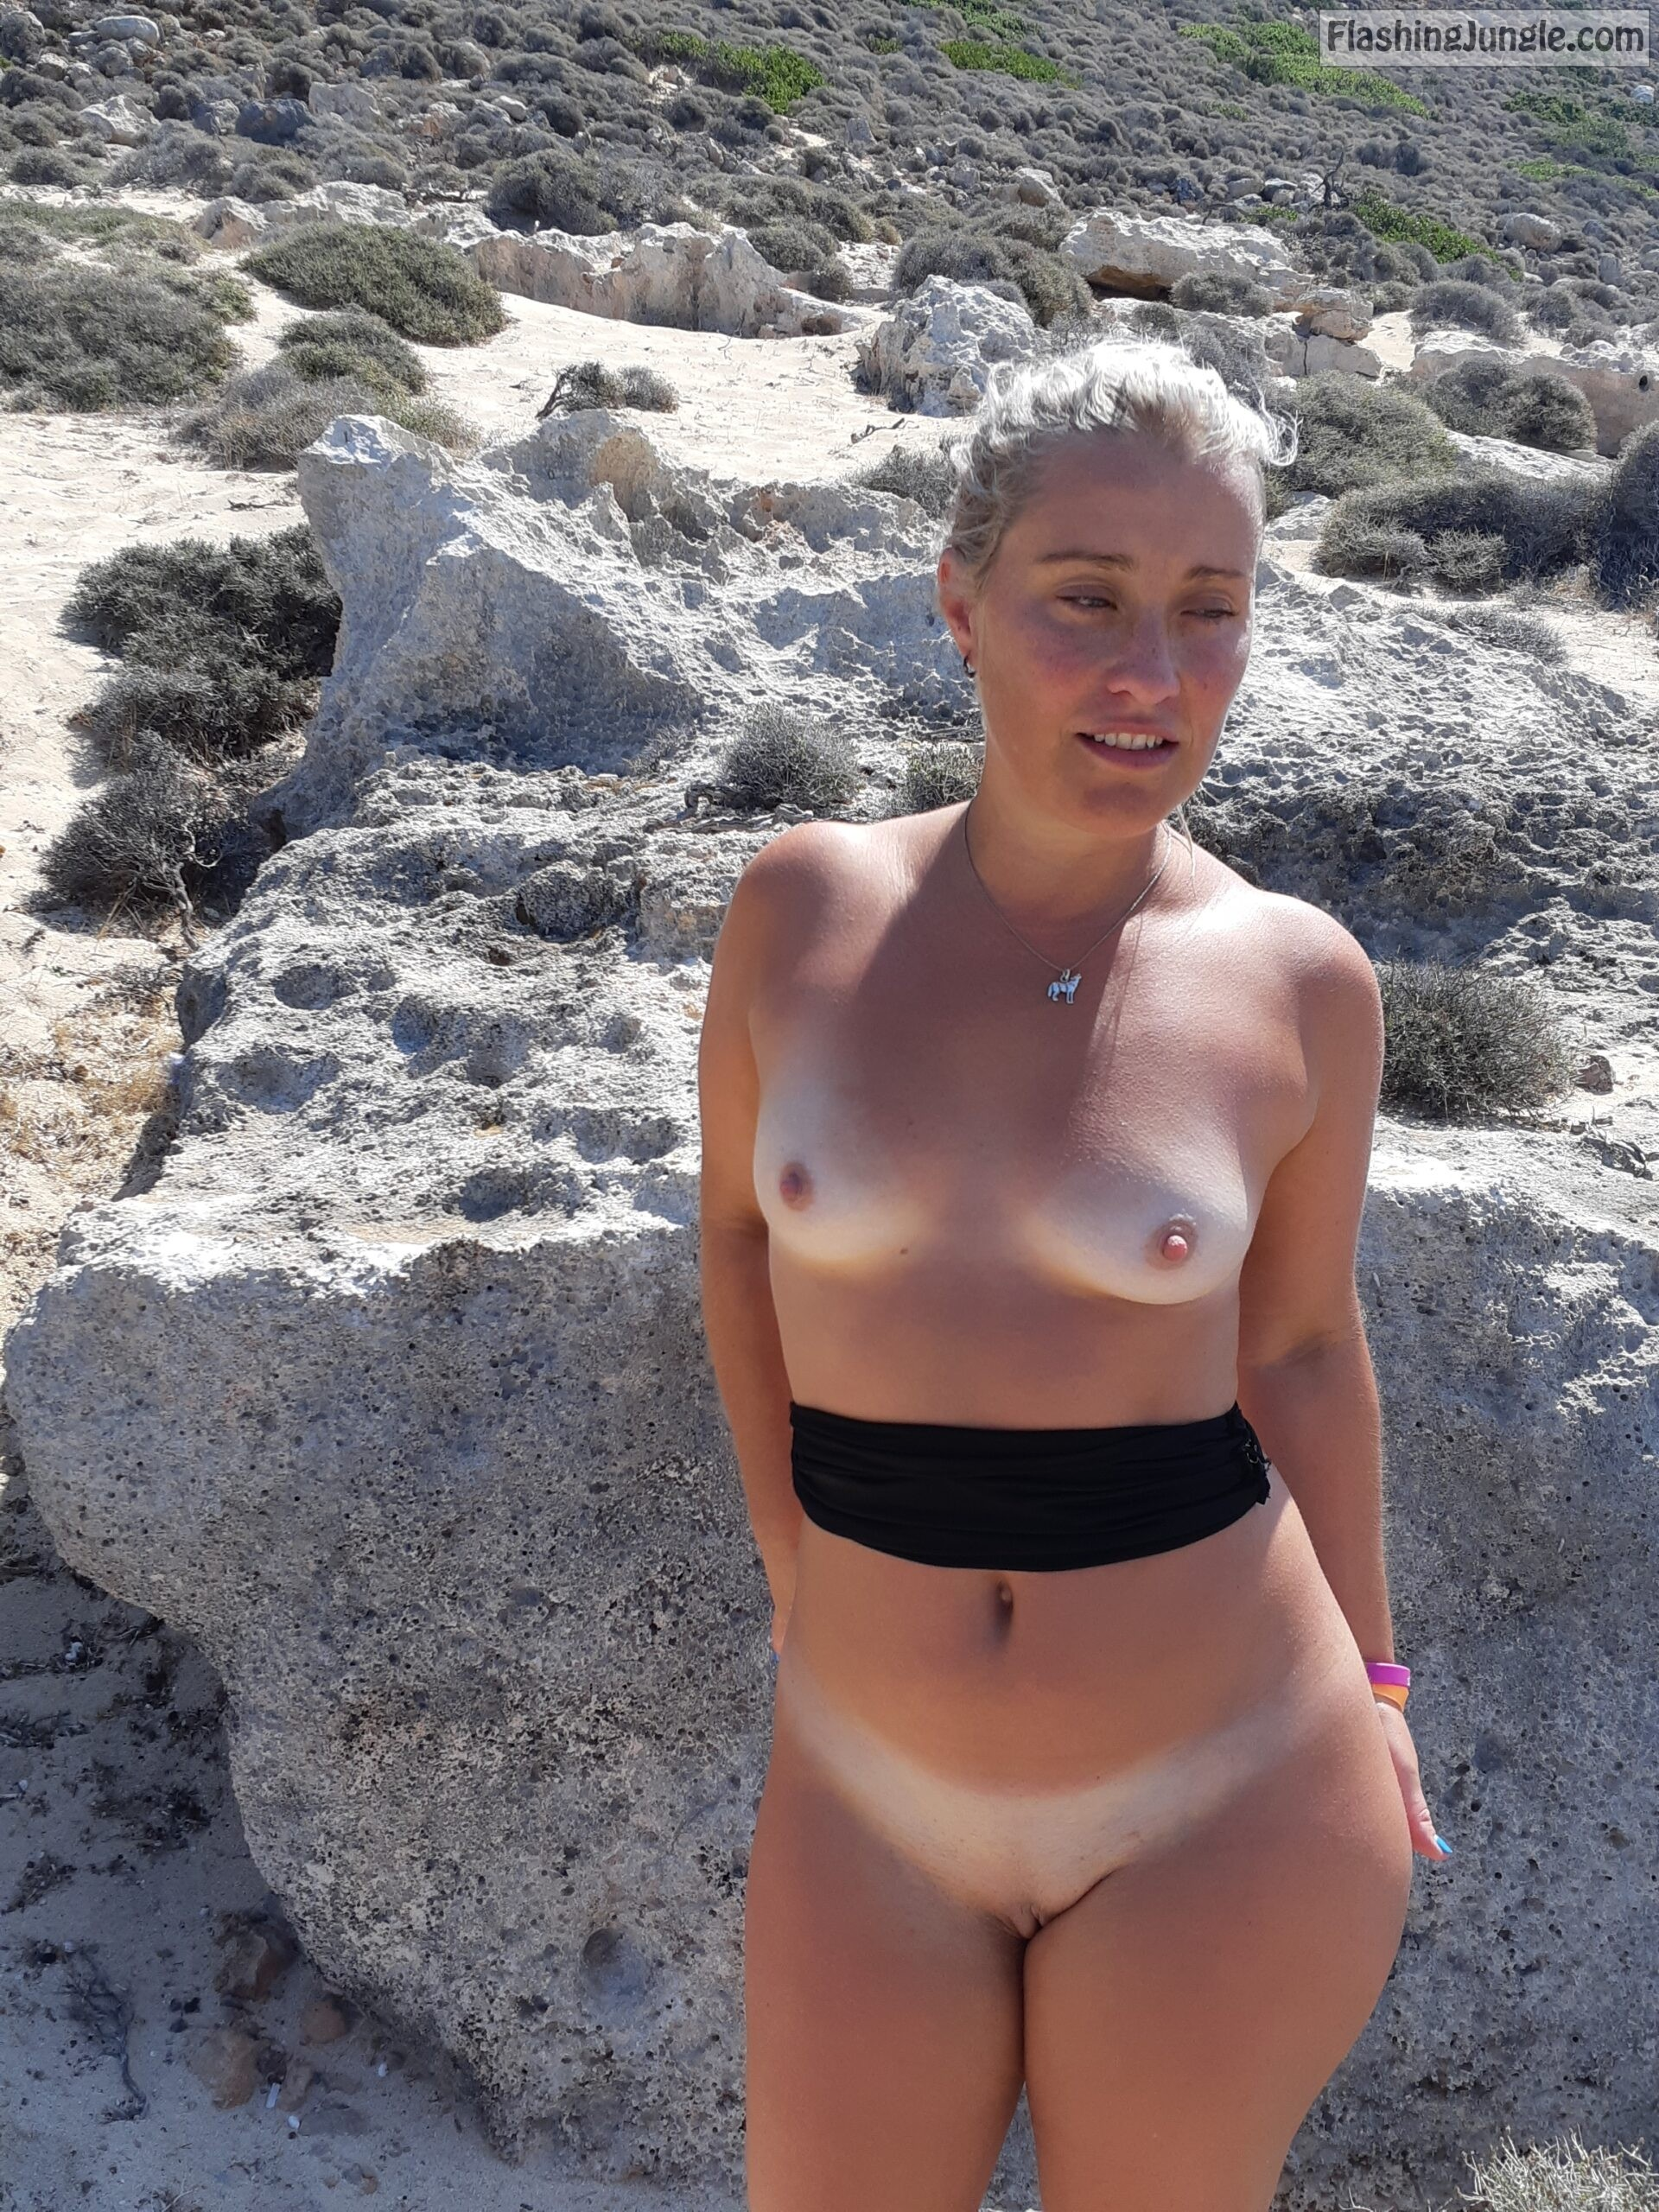 Topless and Bottomless Blonde Flashing Tan Lines on Beach real nudity public flashing nude beach no panties howife boobs flash